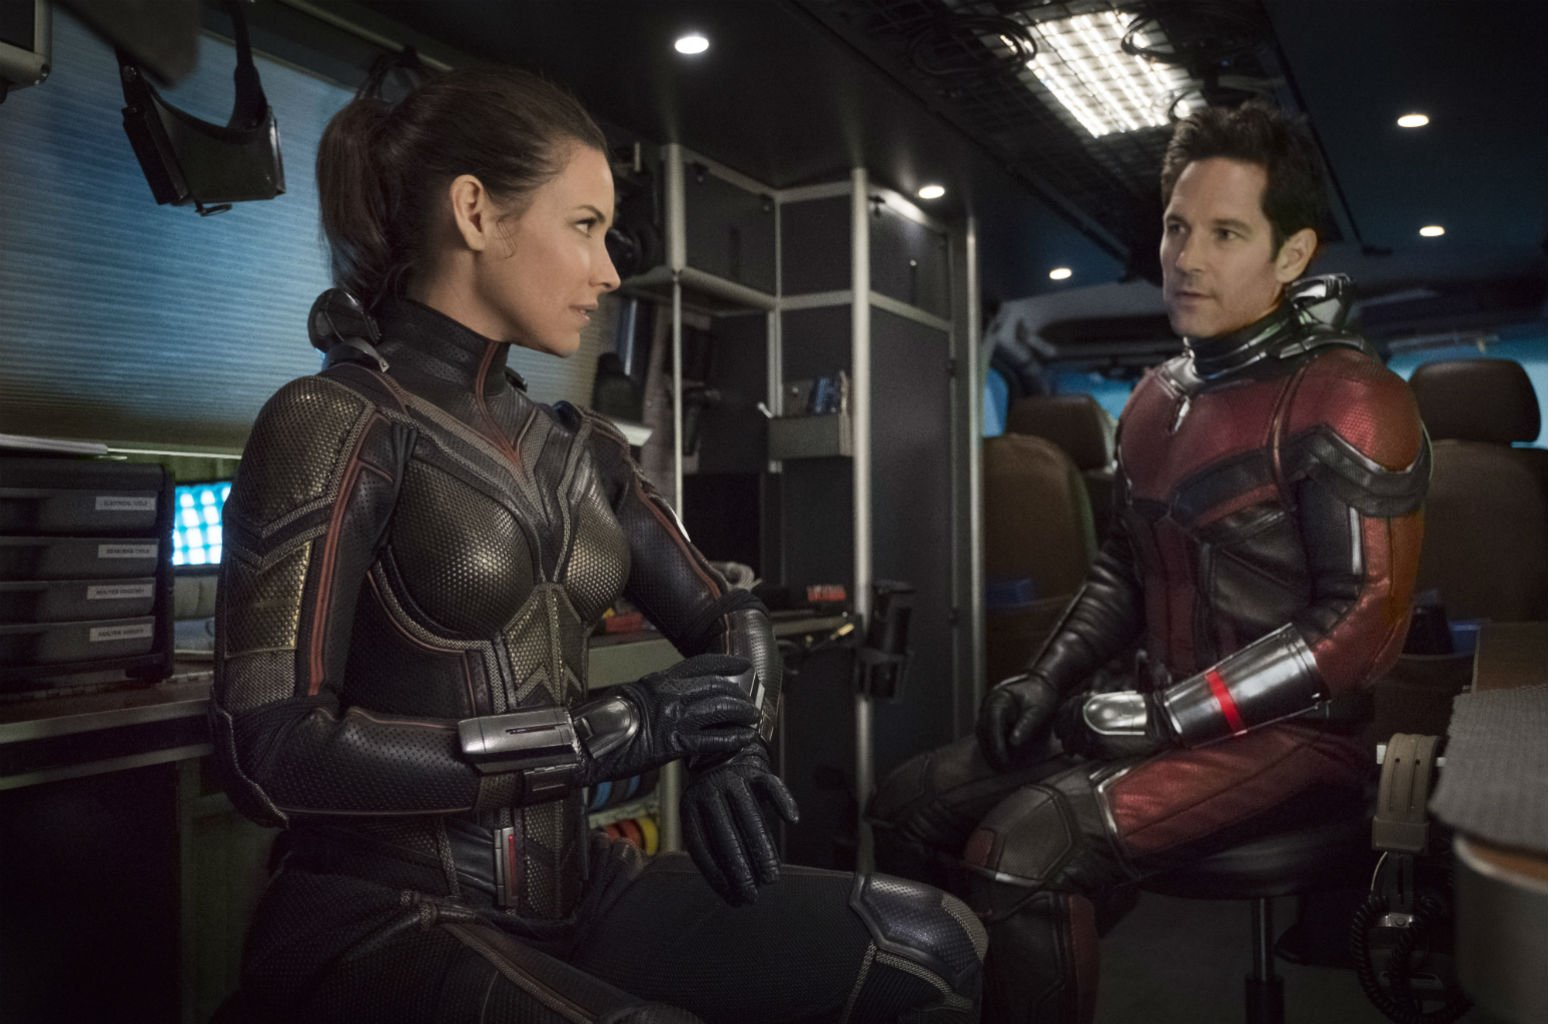 'Ant-Man and the Wasp' soaring to $80 million-plus U.S. debut at the box office https://t.co/P1JeKK863n https://t.co/JRWVzn7YlS